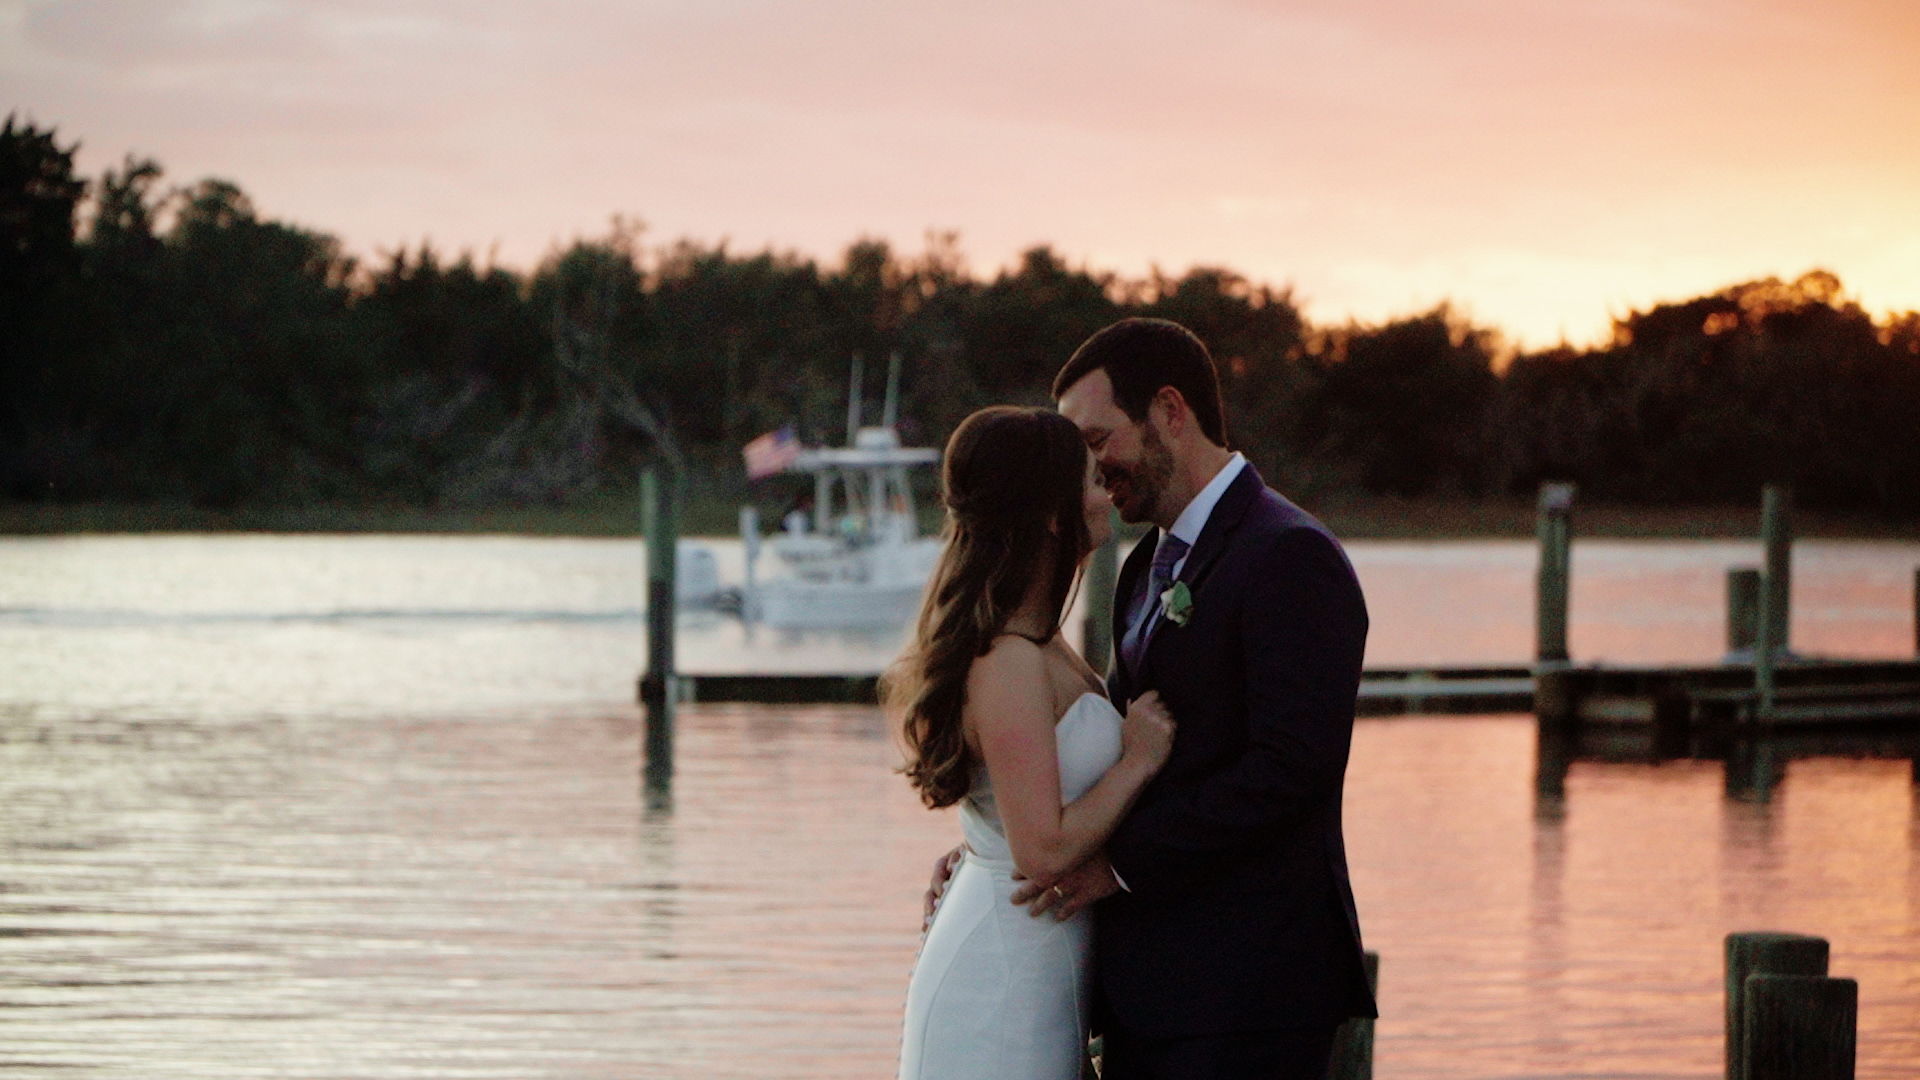 Lindsey + John | Beaufort, North Carolina | The Boat House Marina